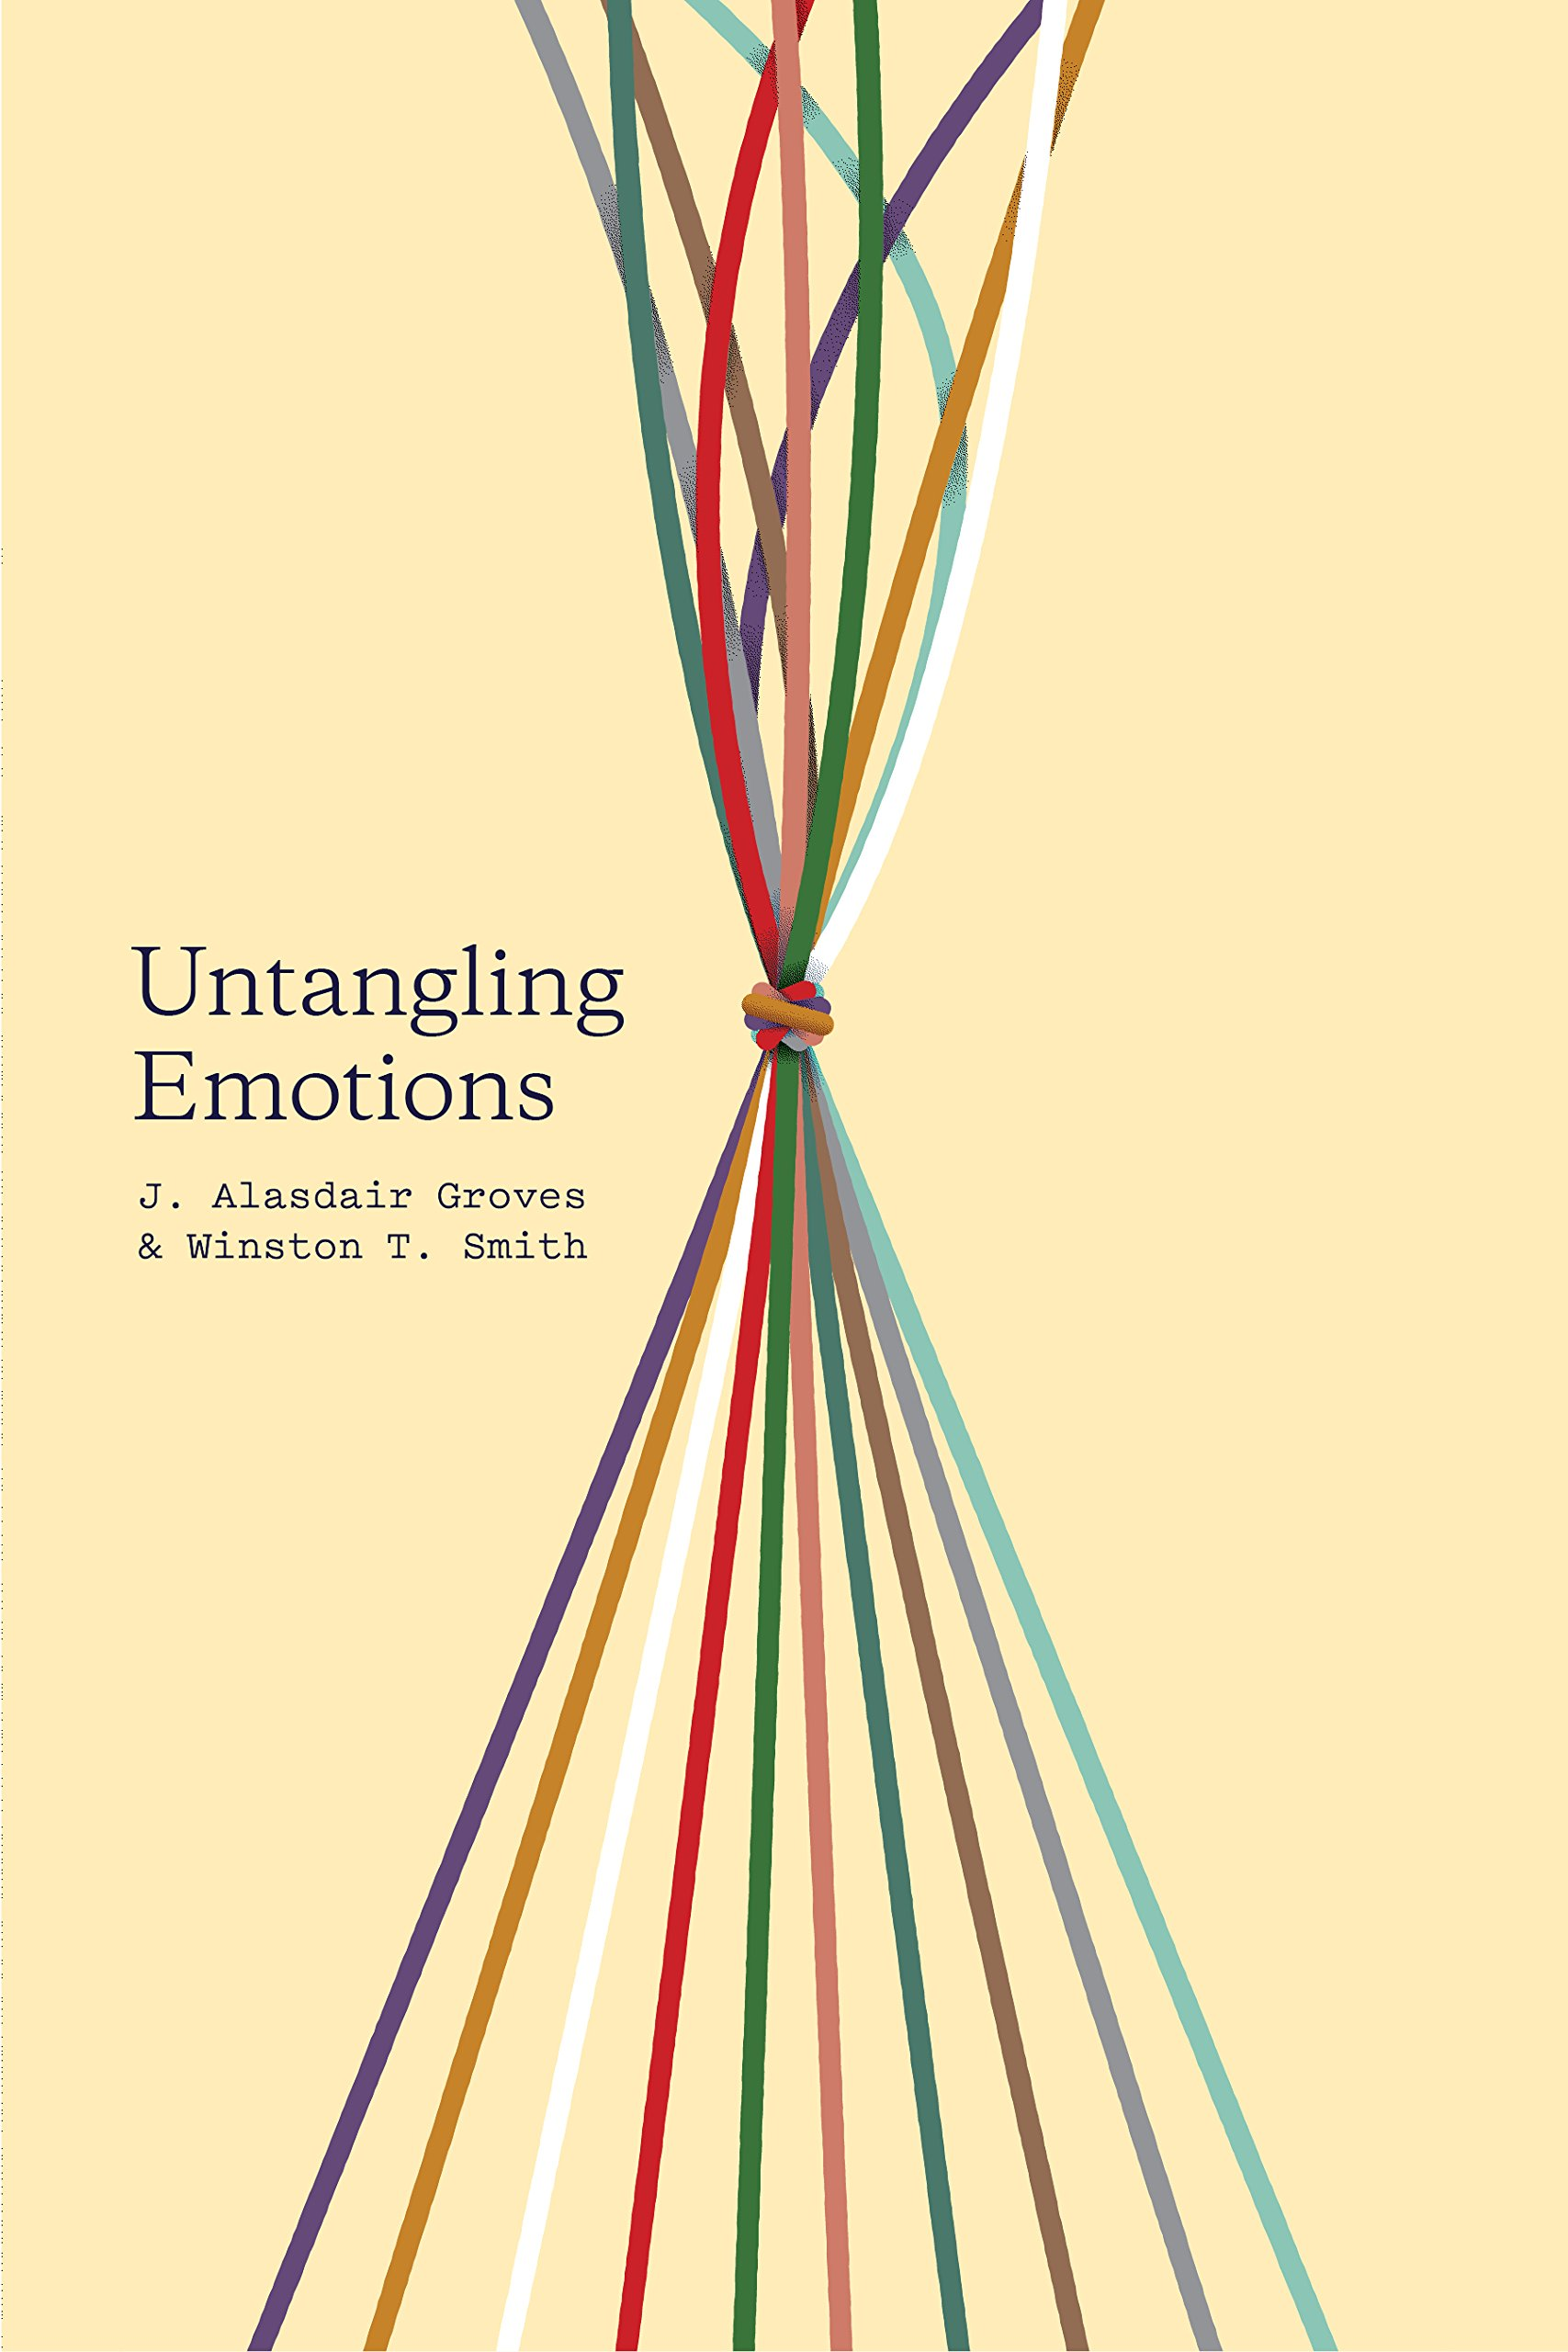 "Untangling Emotions: ""God's Gift of Emotions"": Groves, J. Alasdair, Smith,  Winston T.: 9781433557828: Amazon.com: Books"